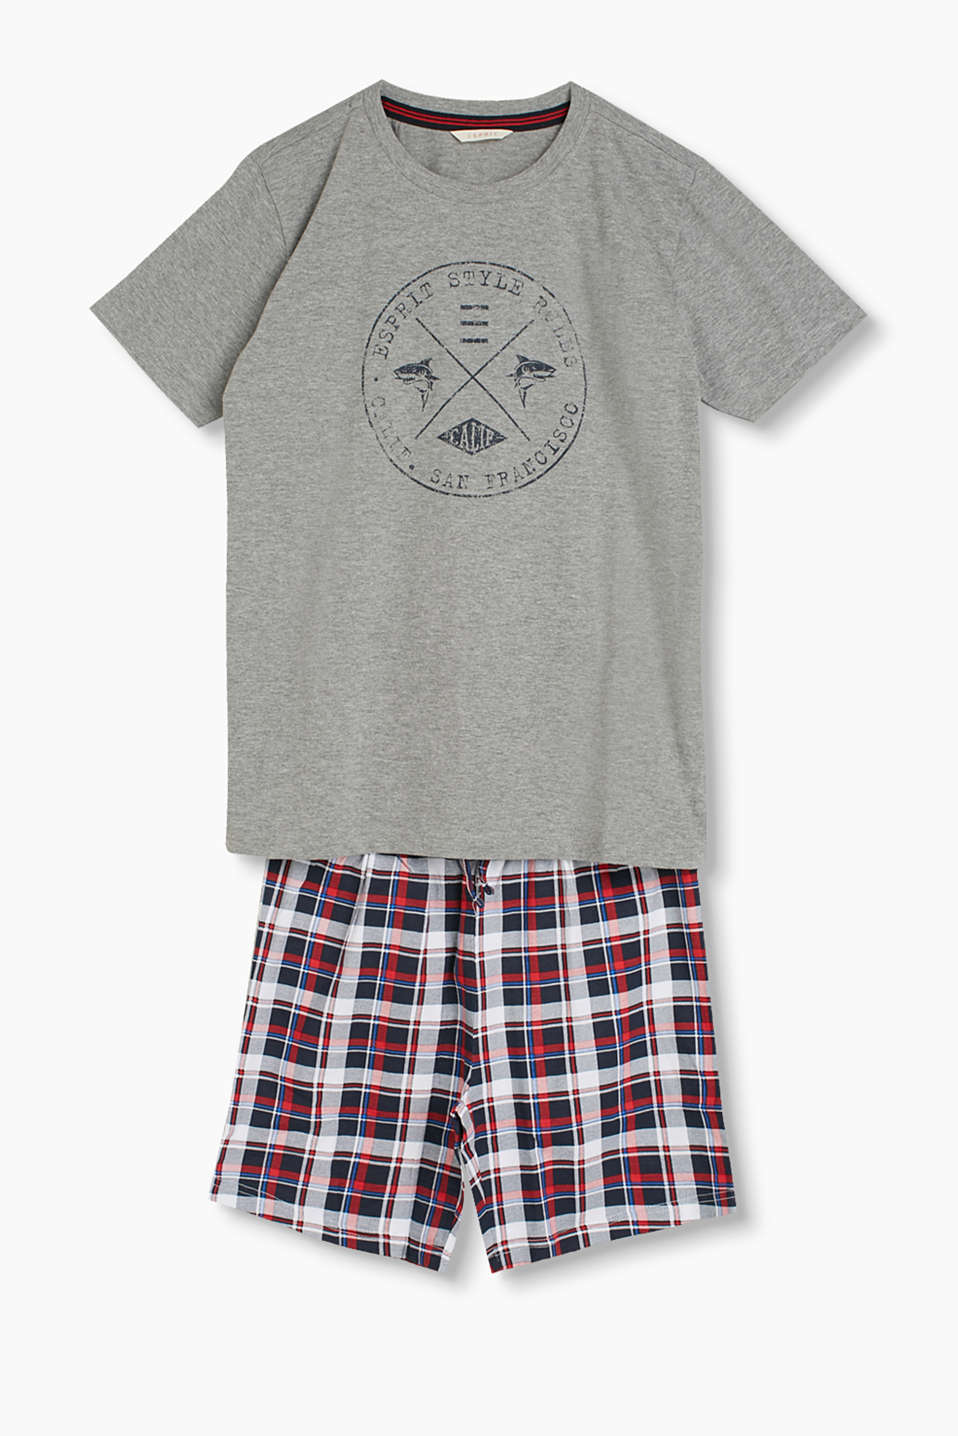 Pyjama set made of 100% cotton with a printed T-shirt and check shorts